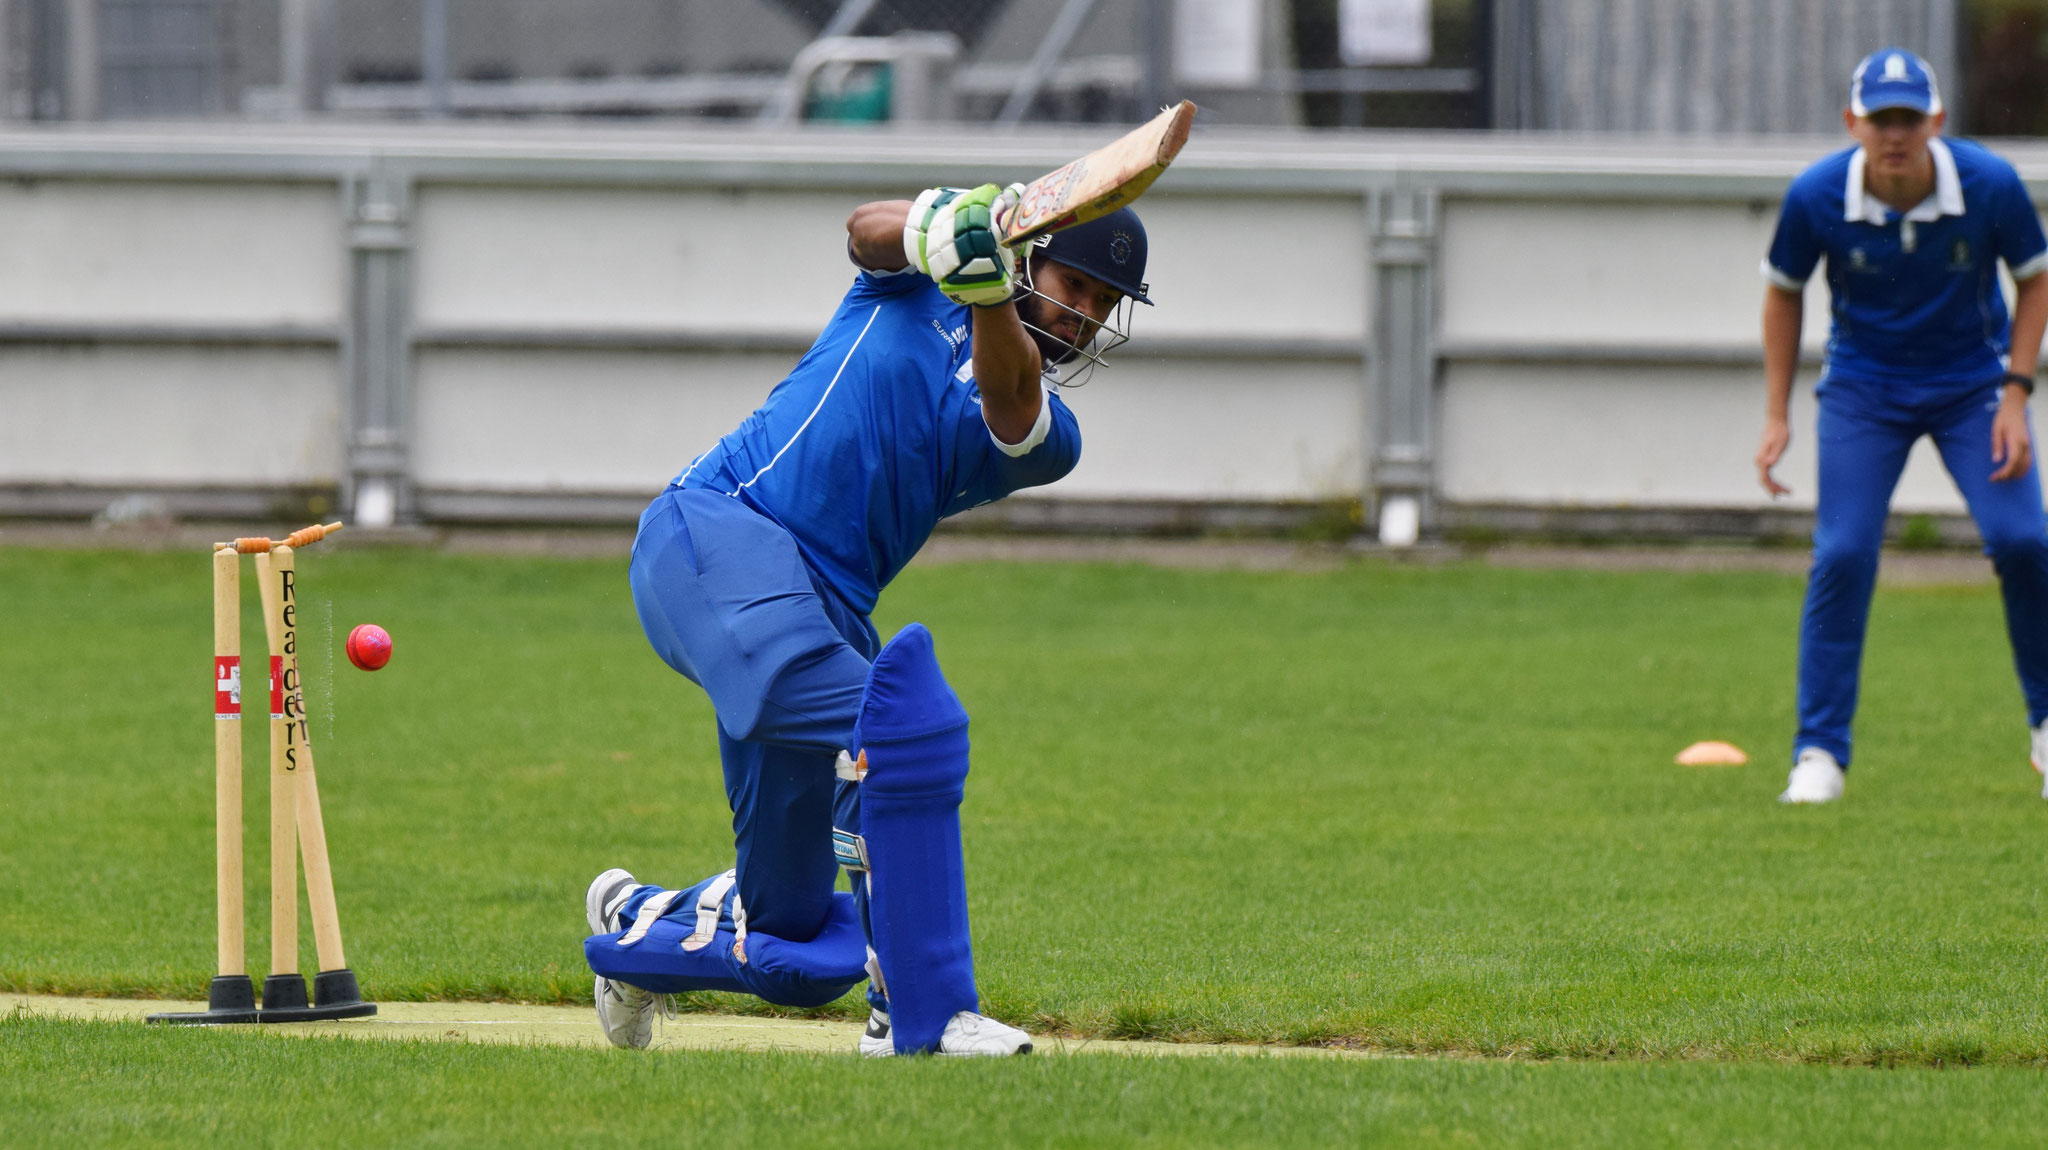 Khawar was bowled by Lavan.